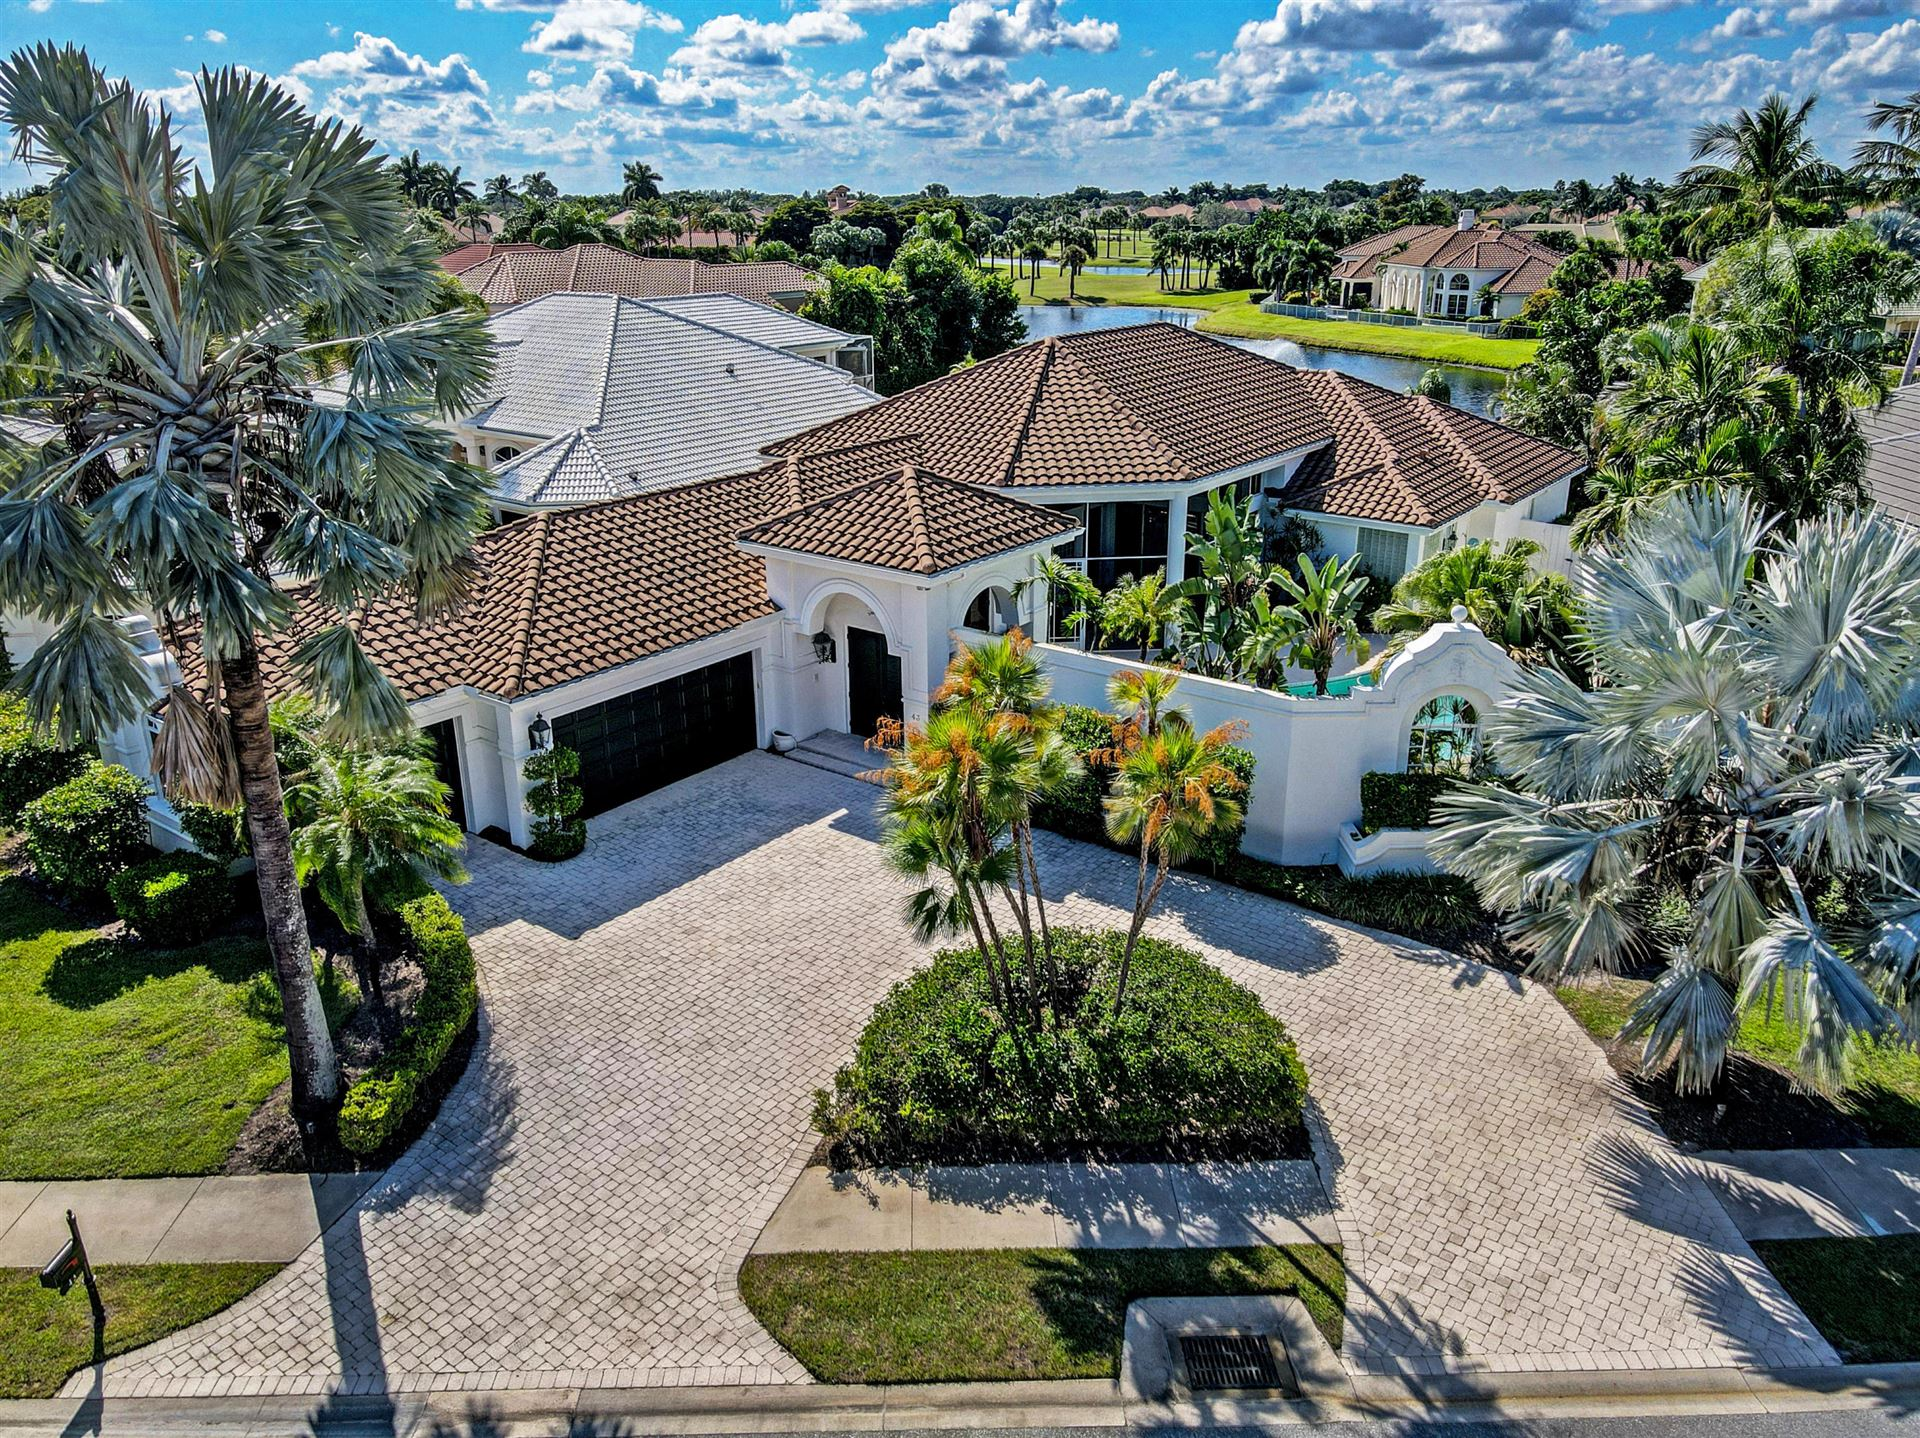 Photo of 43 St James Drive, Palm Beach Gardens, FL 33418 (MLS # RX-10663507)